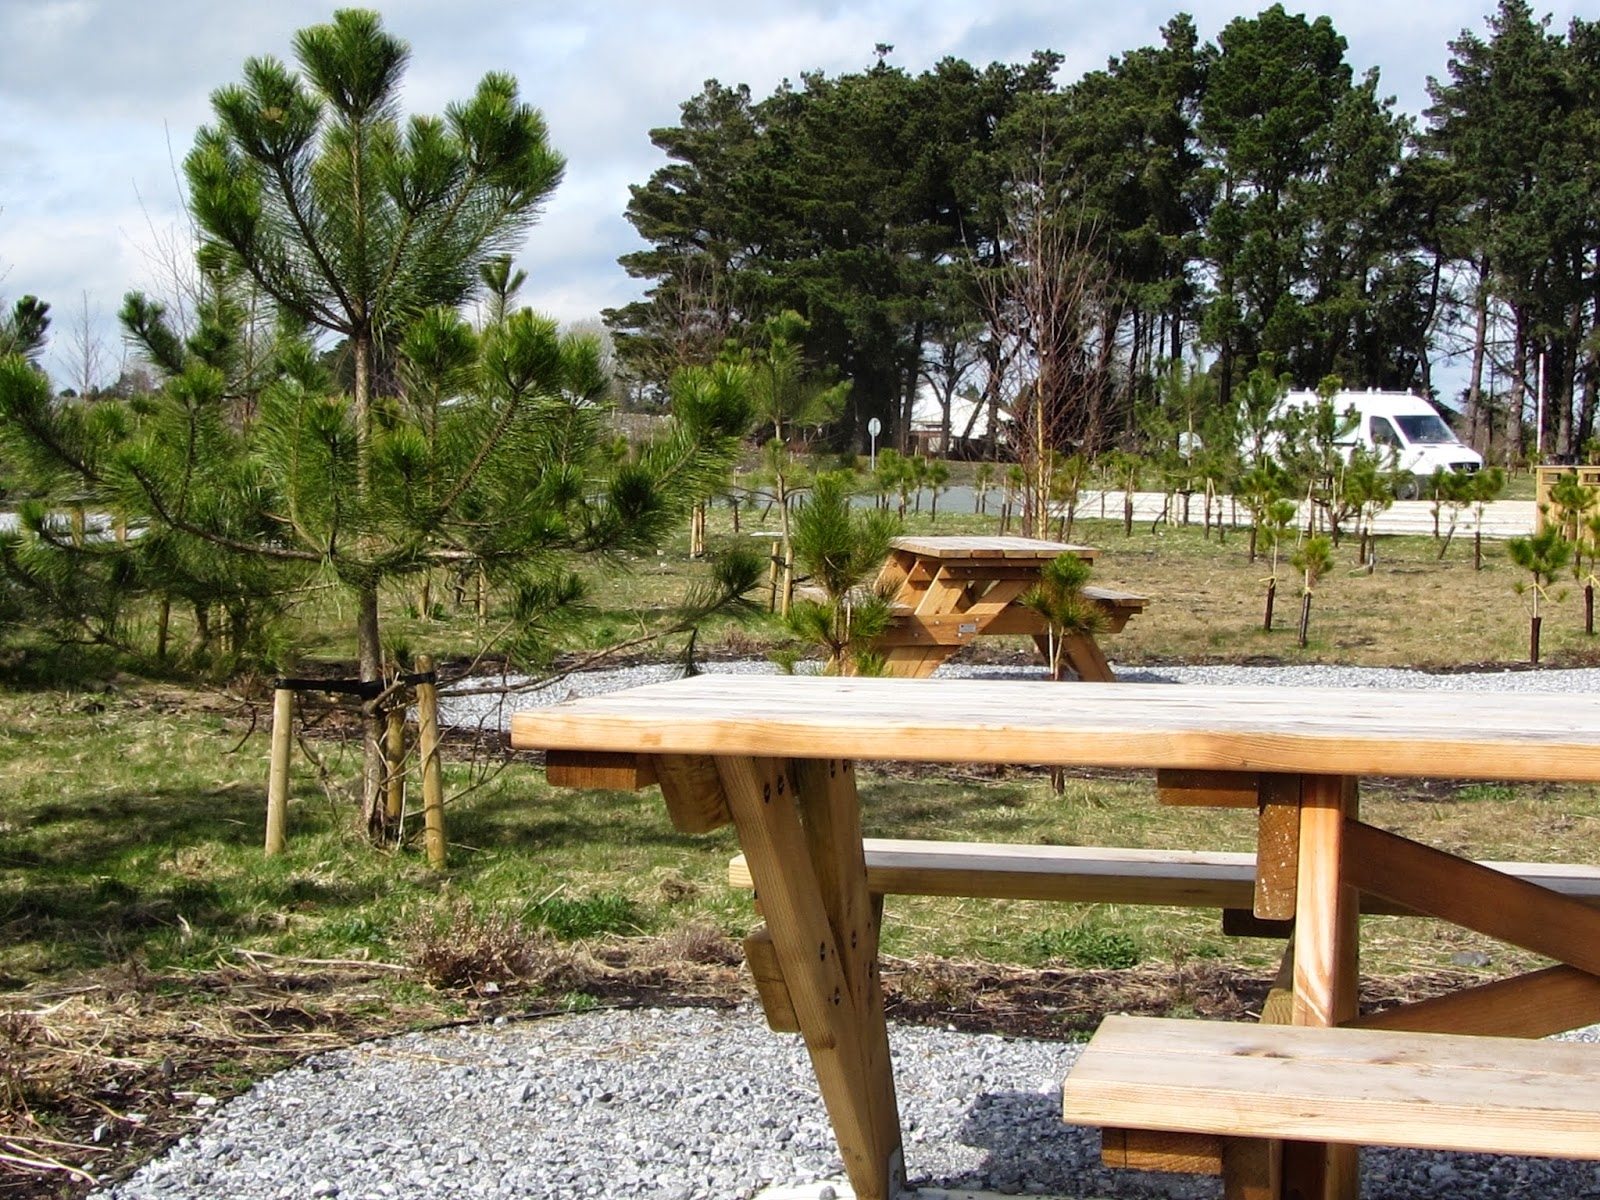 Picnic Table Lough Boora